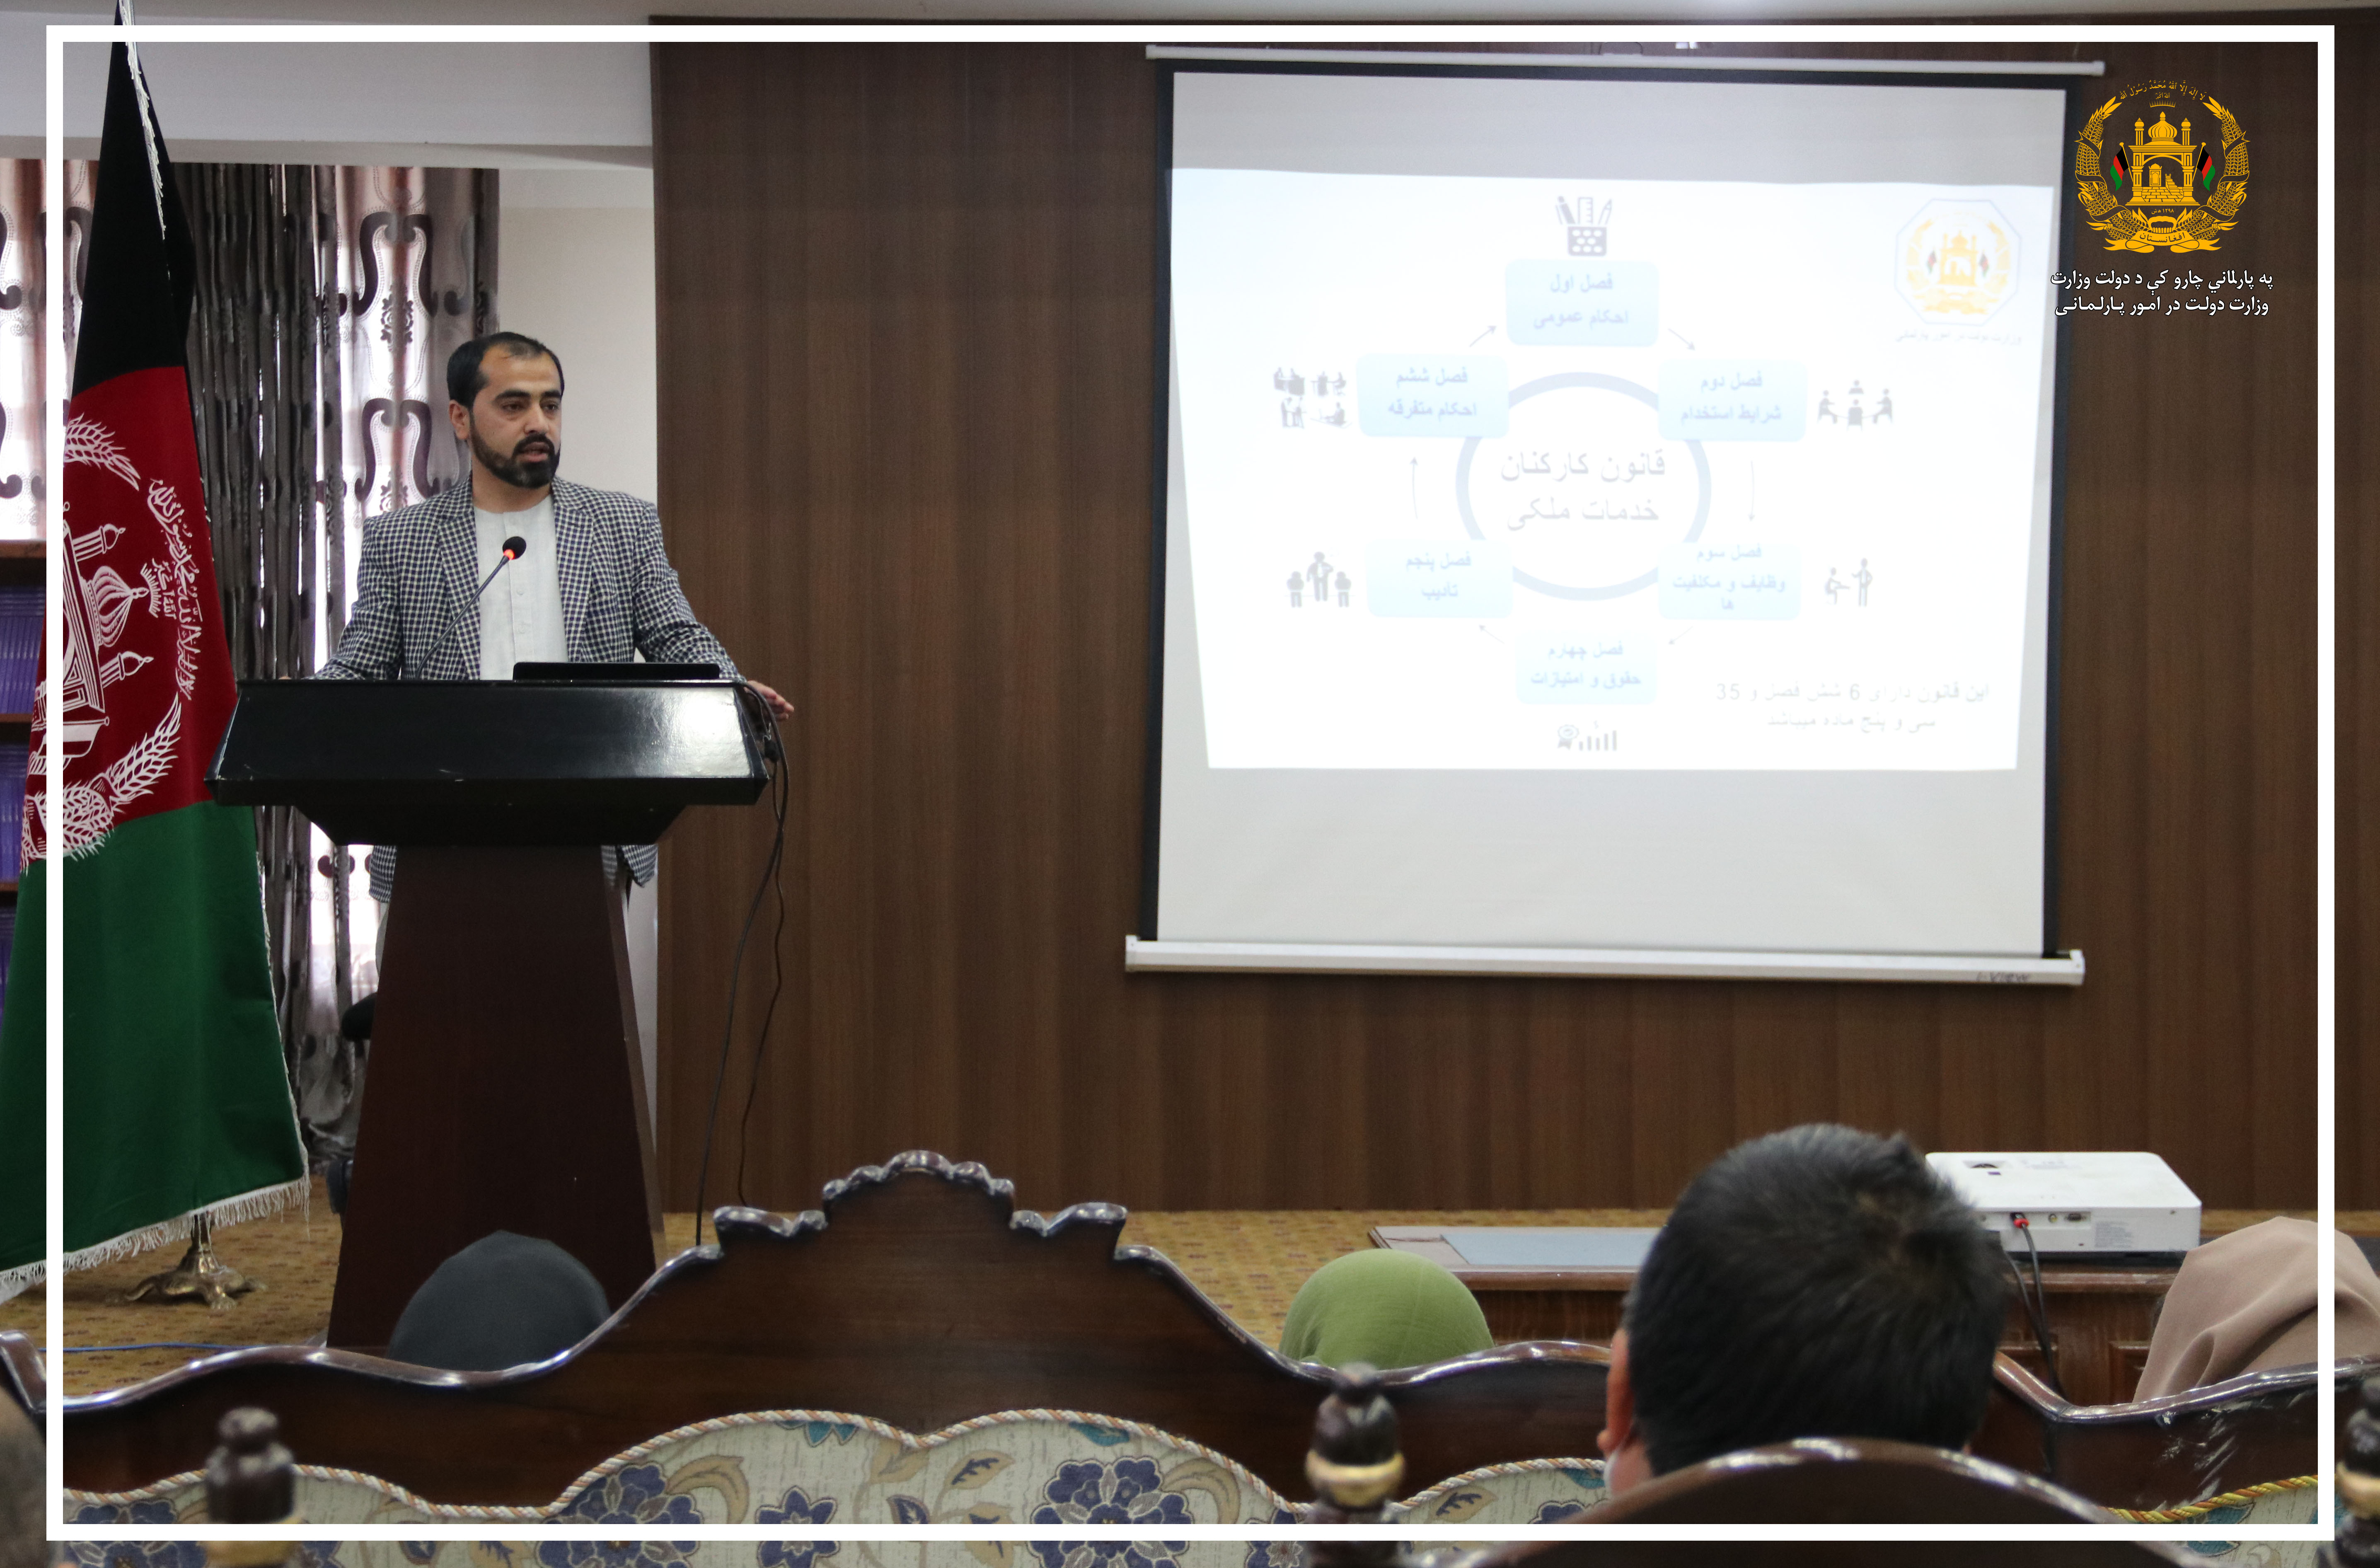 HR Directorate Of SMPA Conducts A Training Workshop On Civil Service Law